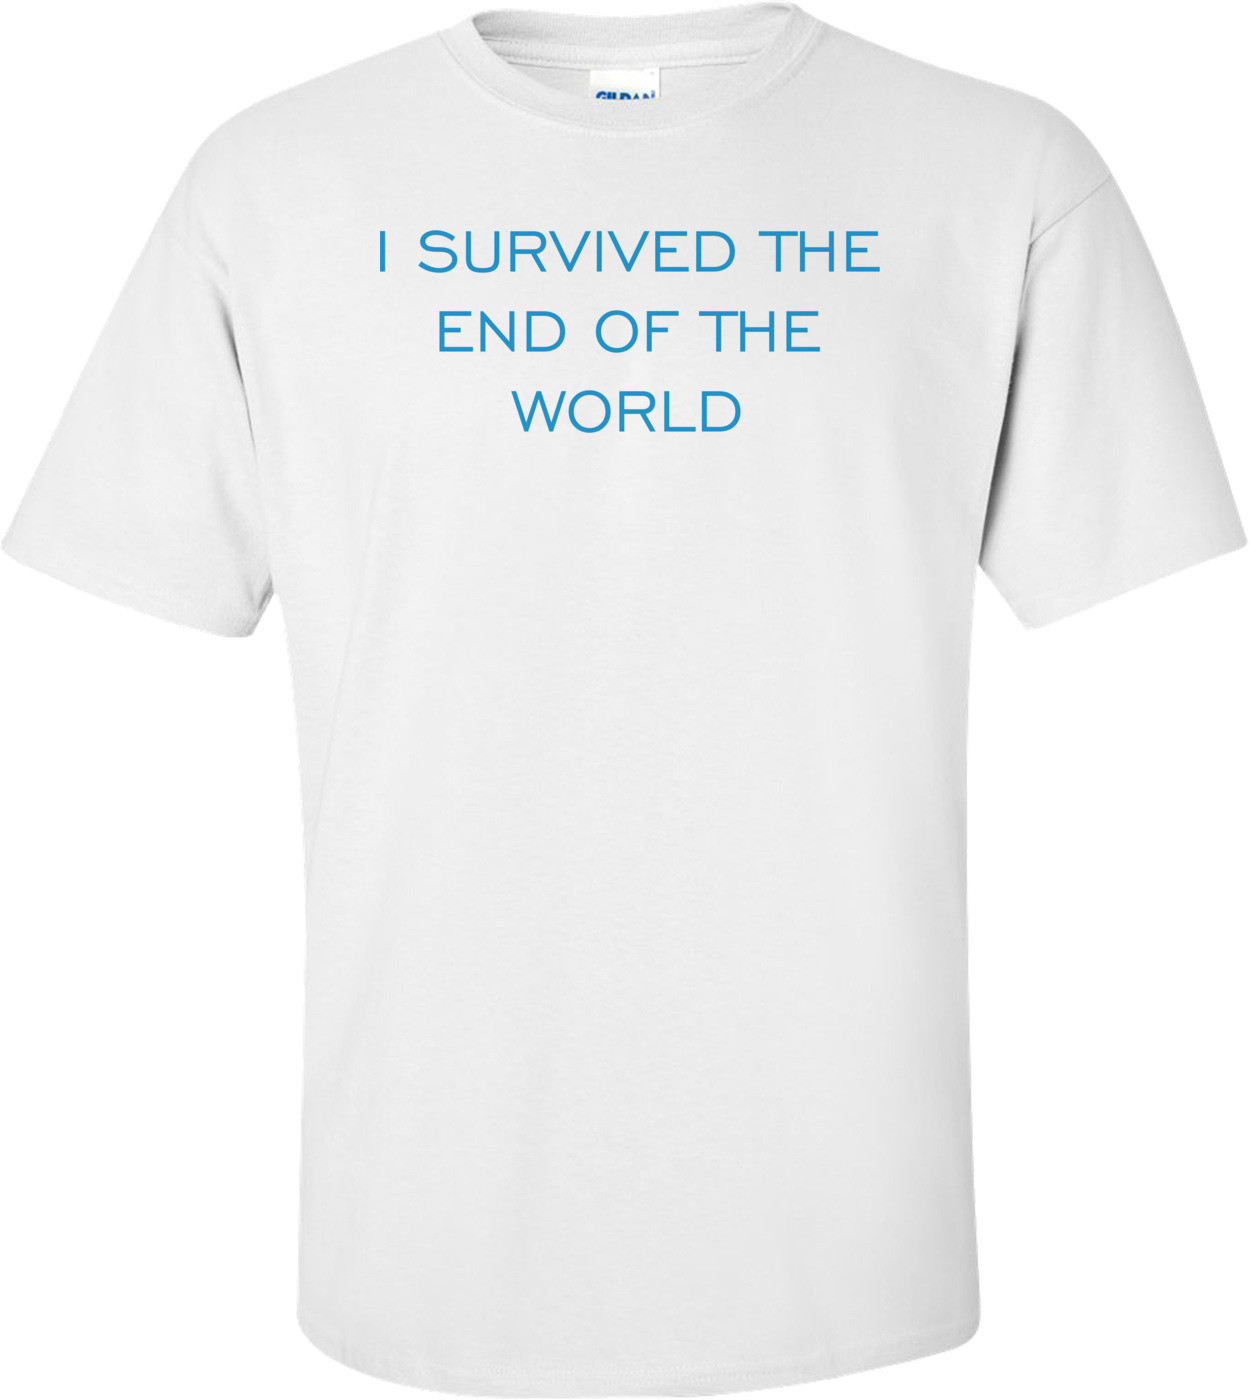 I SURVIVED THE END OF THE WORLD Shirt